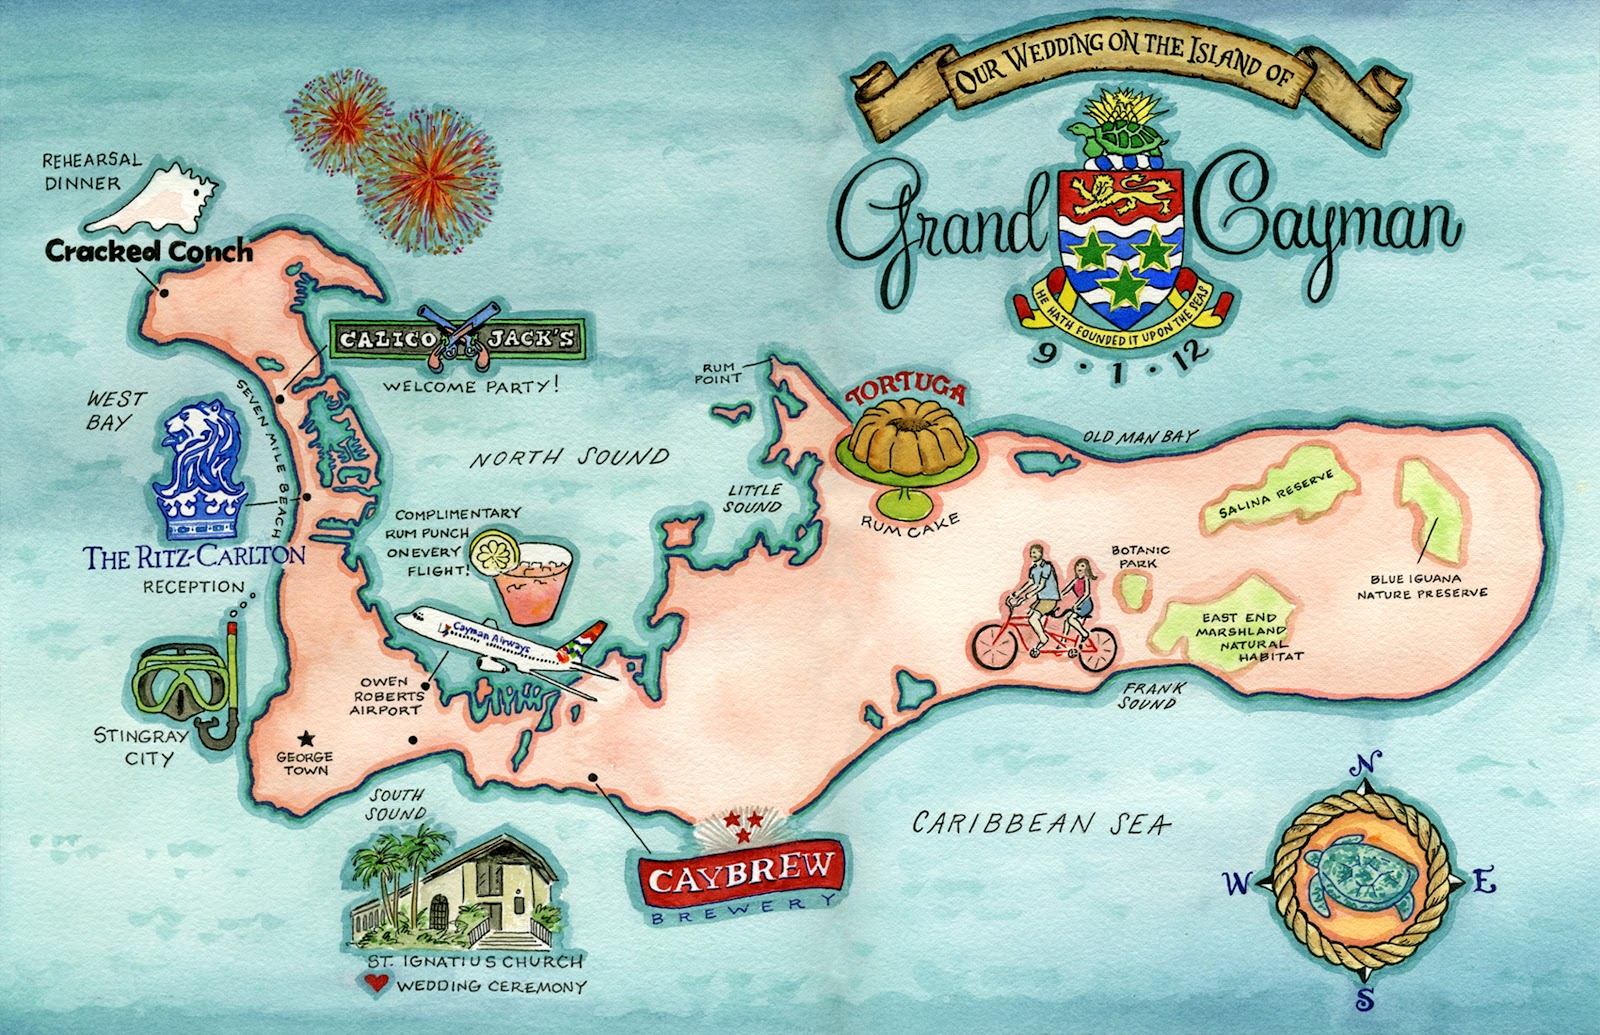 Invitations, Ink, Social Design Studio: Grand Cayman Island ... on belize map, grenada map, acapulco map, tampa bay cruise port terminal map, jamaica map, bermuda map, cozumel map, florida map, bahamas map, grand turk map, st. thomas map, venezuela map, seven mile beach map, mexico map, dominican republic map, hawaii map, caribbean map, aruba map, grand caicos map, grand caymen,